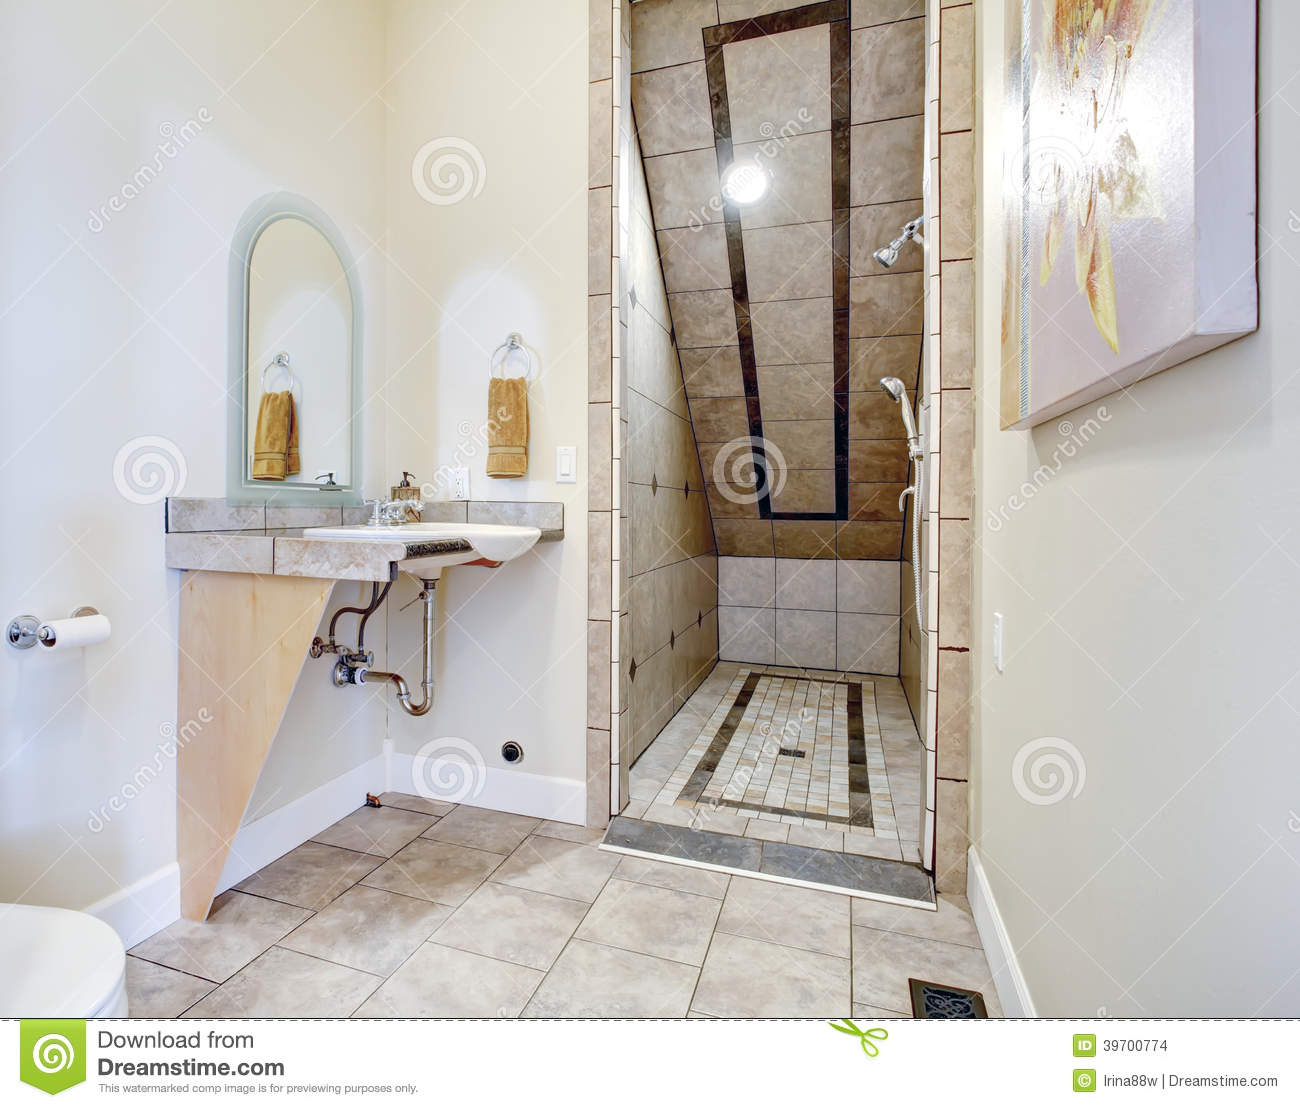 Bathroom With Vaulted Ceiling Shower Area Stock Photo